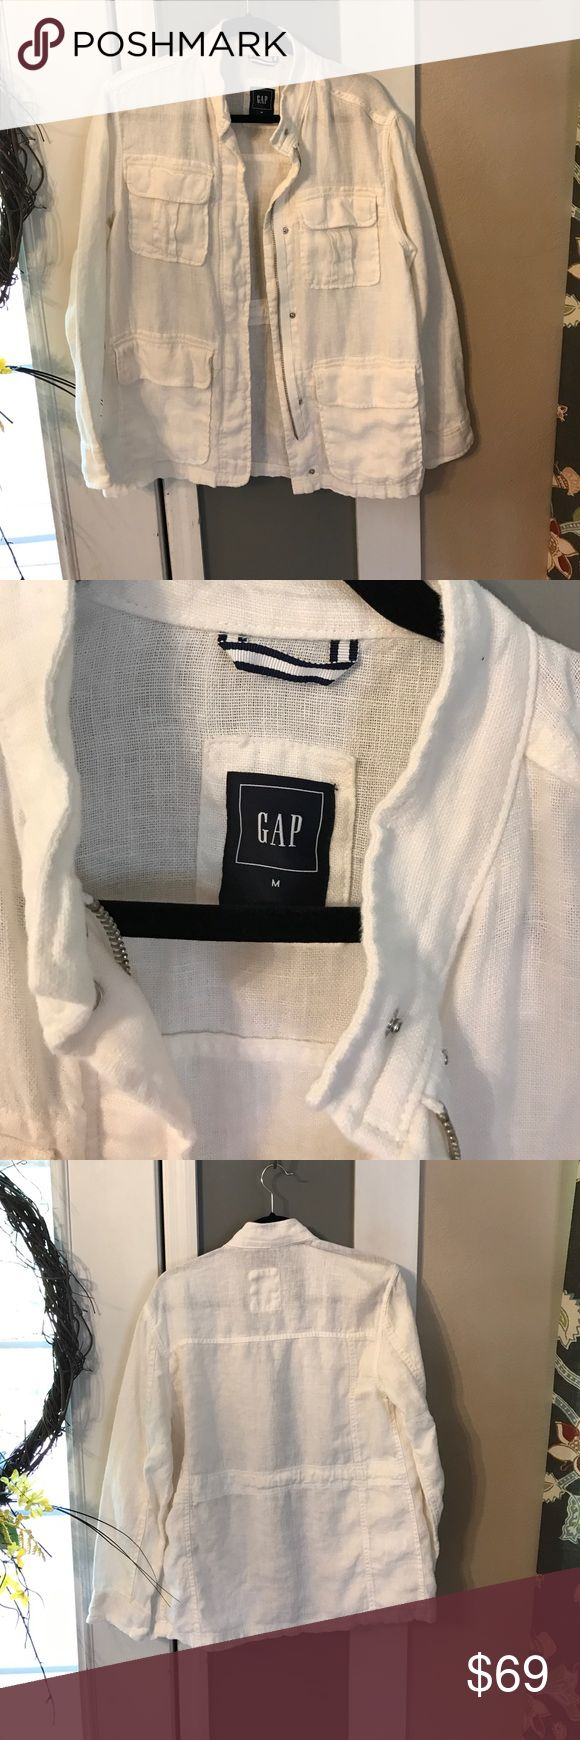 Gap Women's White Linen Jacket Excellent Condition! Worn once. All linen, pic of care and materials in photos. Zip and snap closure. Measures approximately 29 in length, chest measures approximately 21.5 . Very nice jacket. Smoke free home. Price firm. White in color GAP Jackets & Coats Utility Jackets